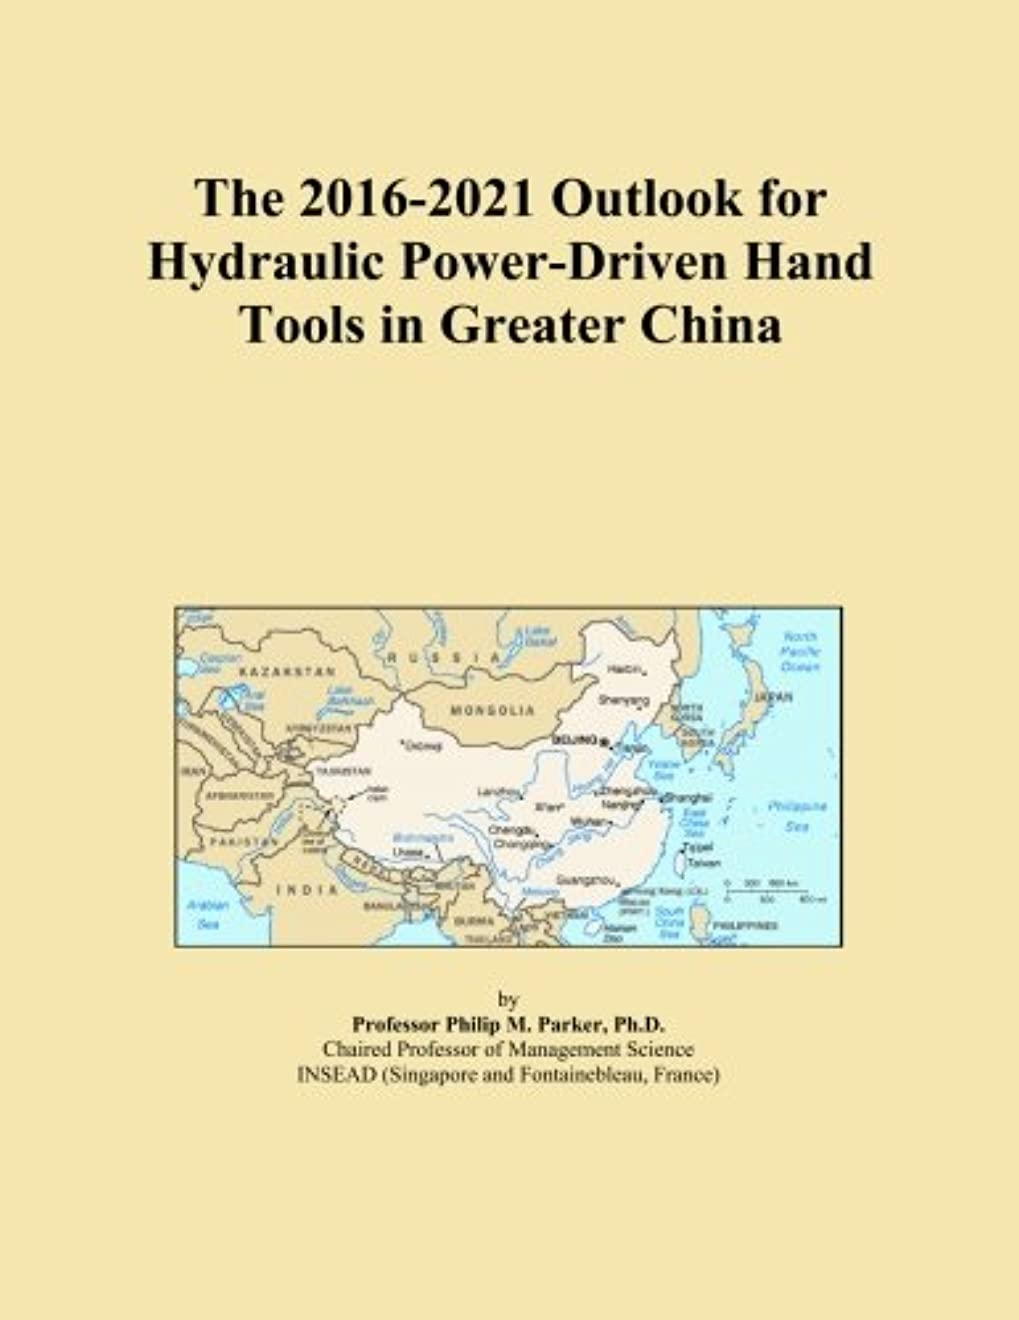 The 2016-2021 Outlook for Hydraulic Power-Driven Hand Tools in Greater China